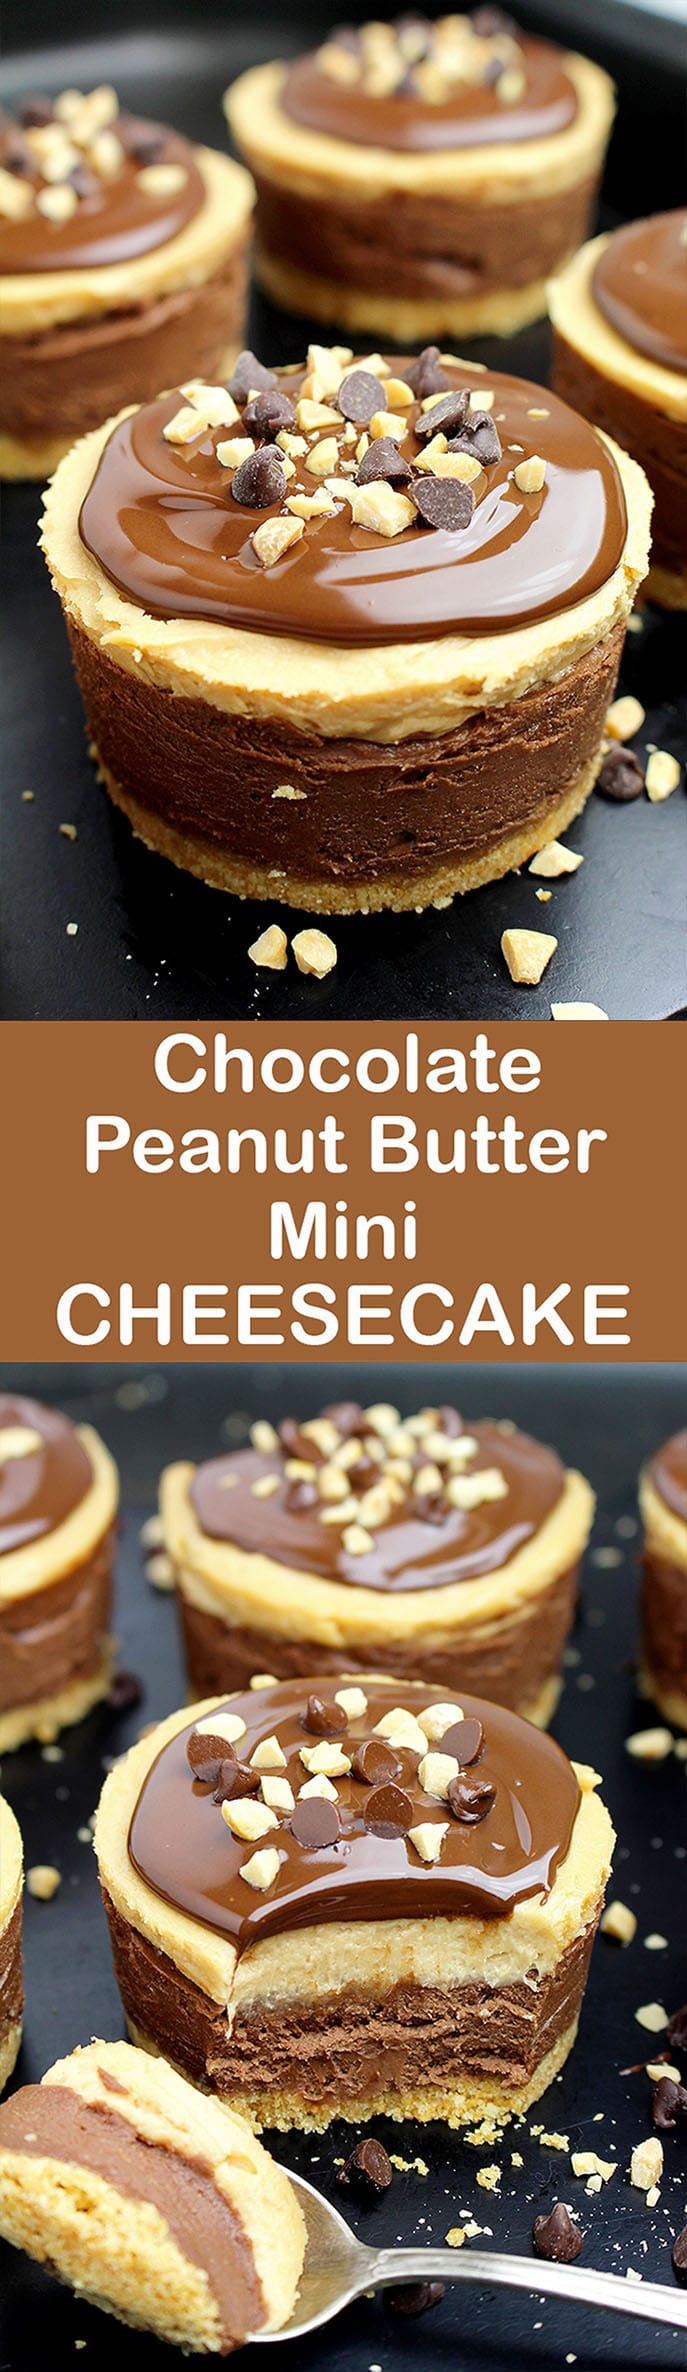 Chocolate and peanut butter, do you like this combination. If your answer is yes, we have an awesome dessert for you No Bake Chocolate Peanut Butter Mini Cheesecake.